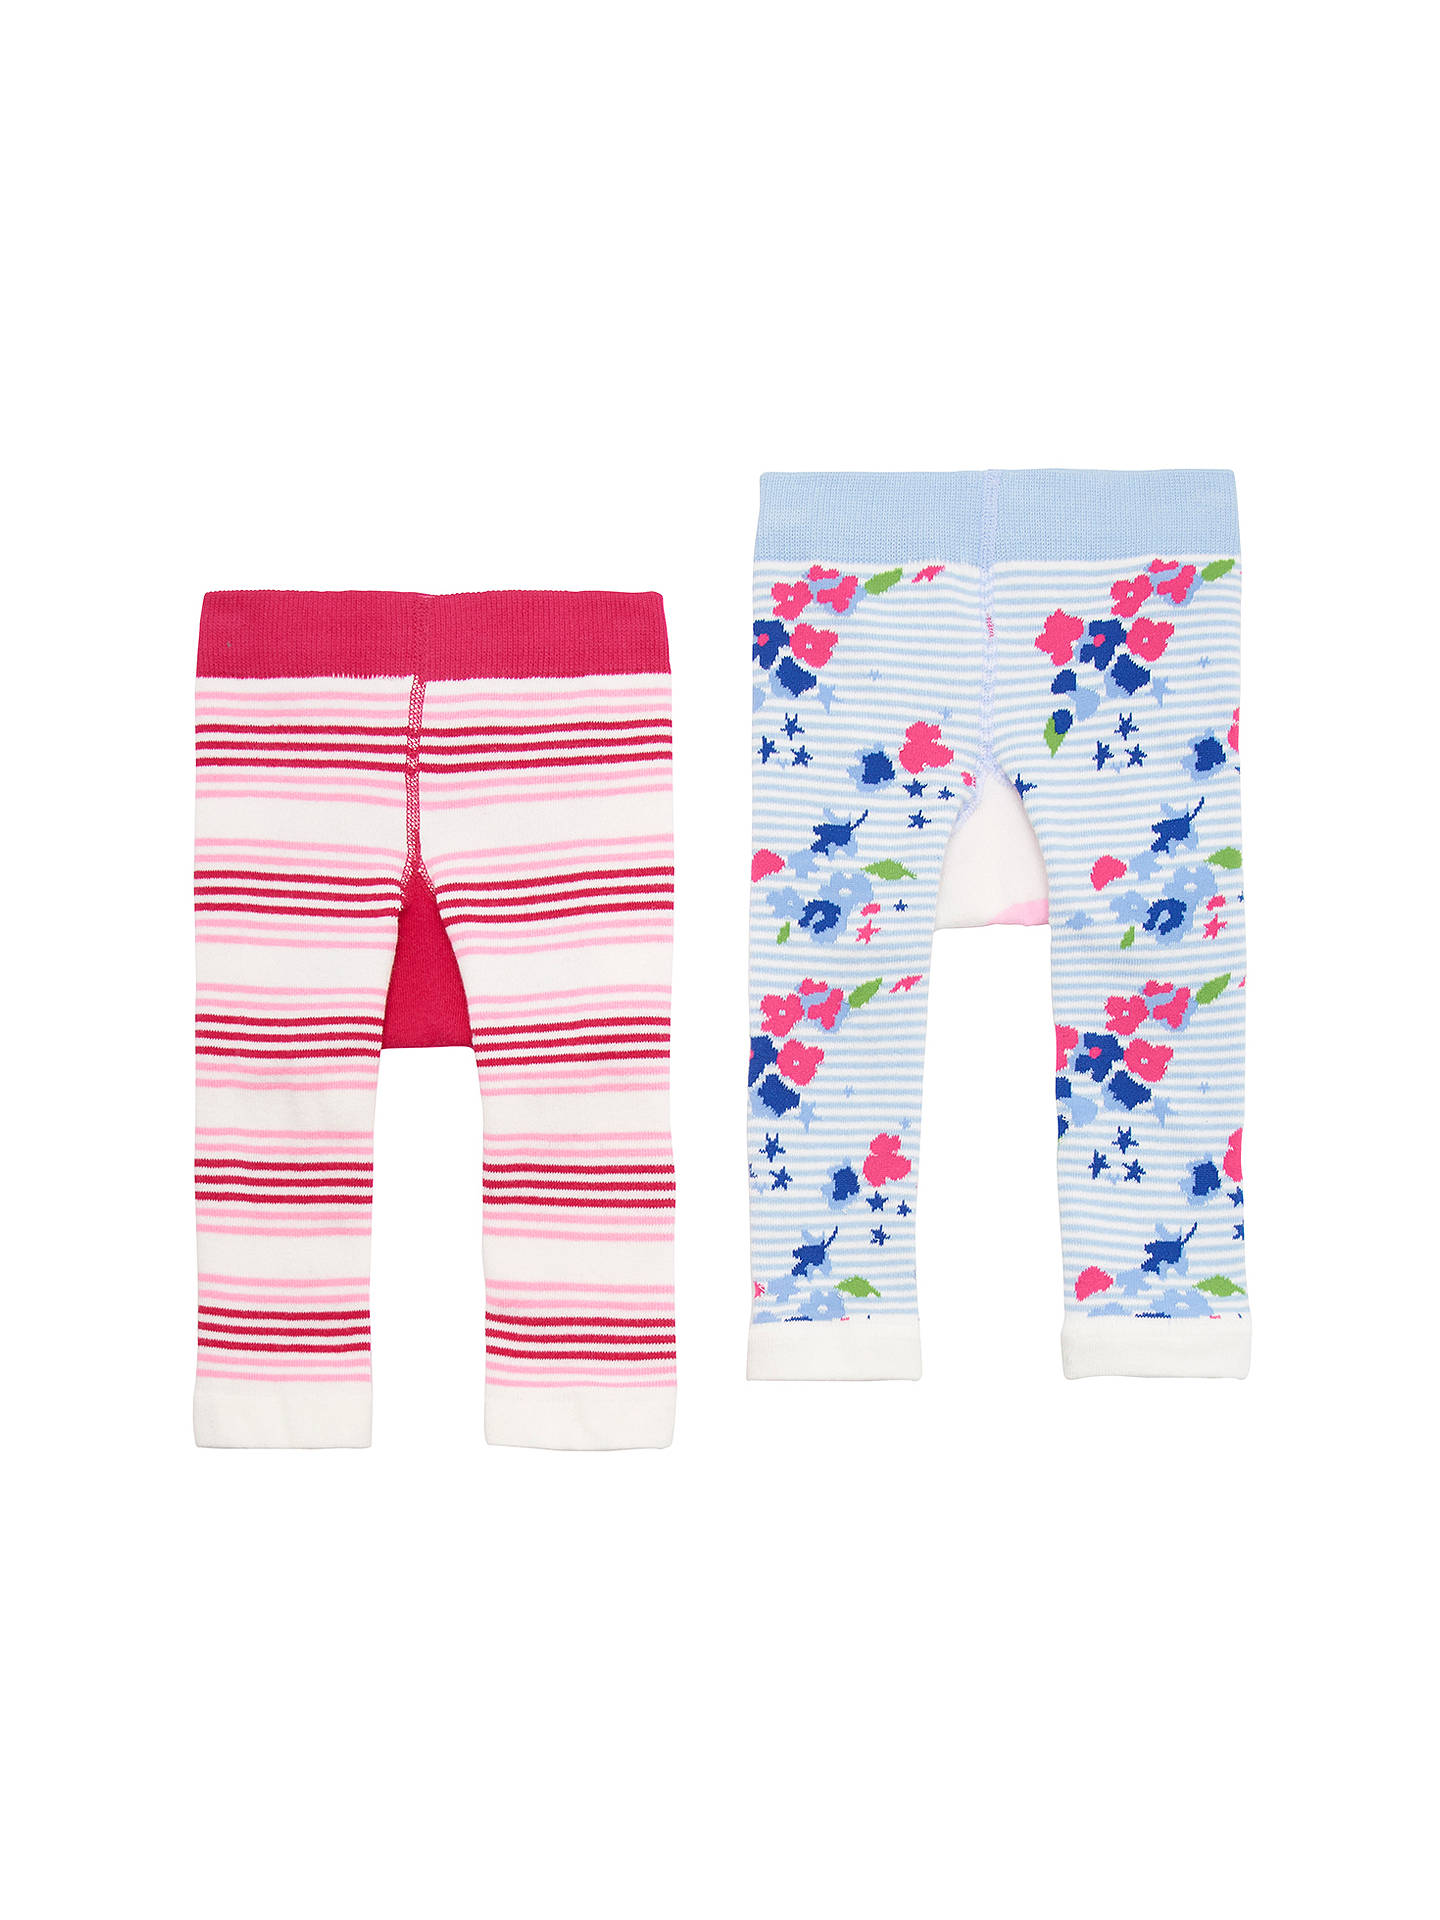 0e003923fb47f6 ... Buy Baby Joule Lively Legs Bunny and Owl Leggings, Pack of 2, Pink/ ...